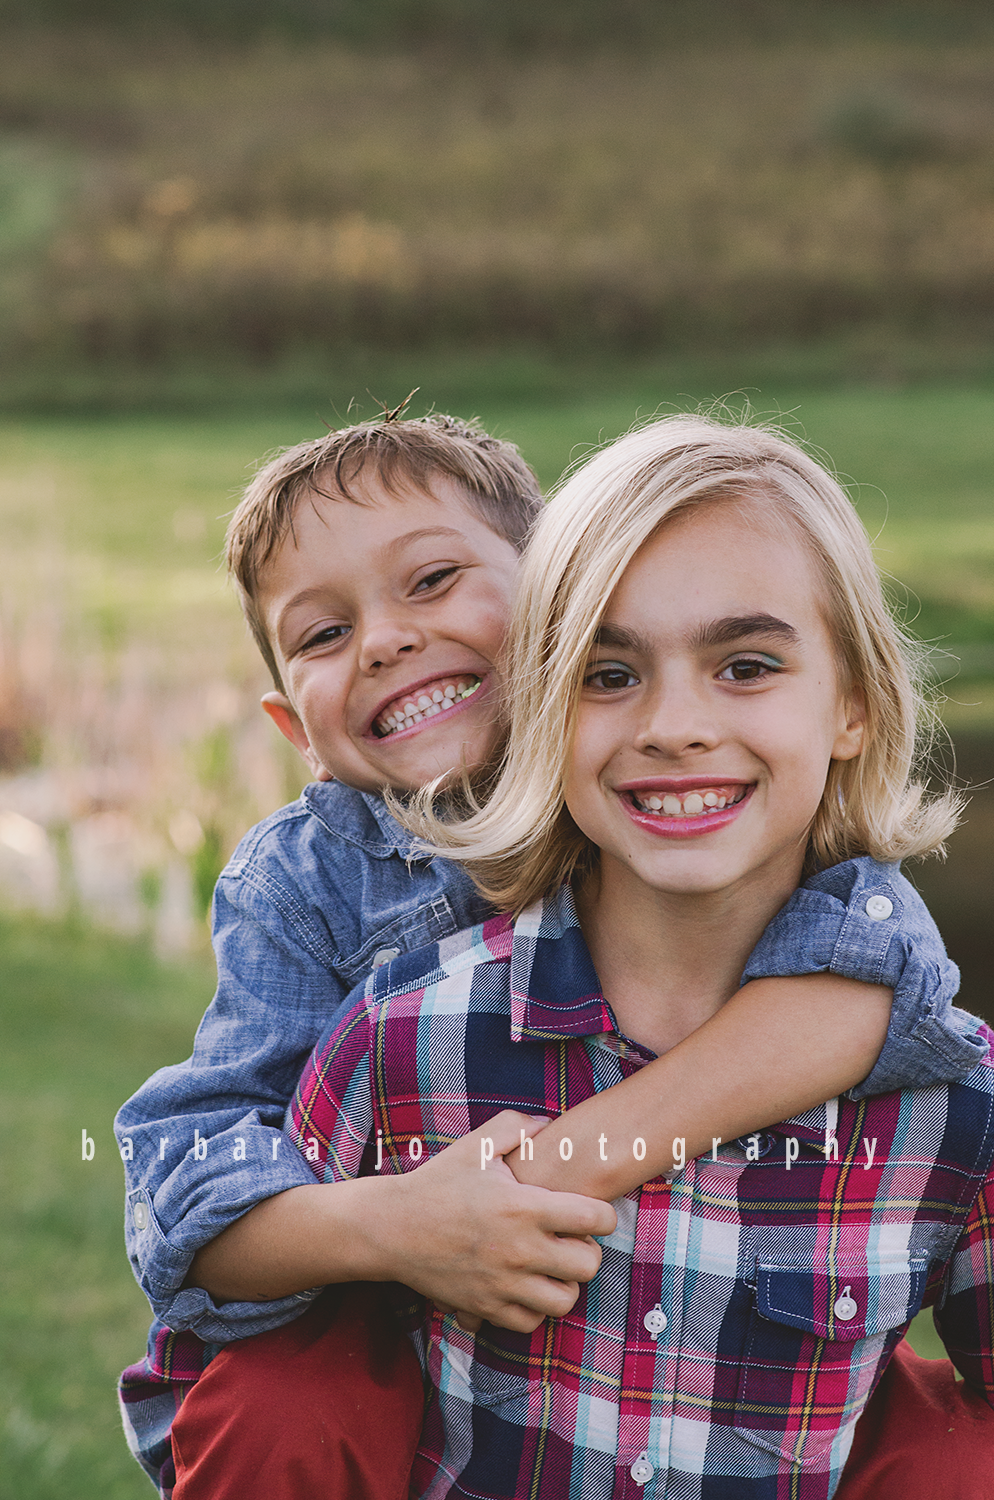 bjp-family-photographer-kids-siblings-blended-brothers-sisters-fall-mini-sessions-children-love-rachel7.png